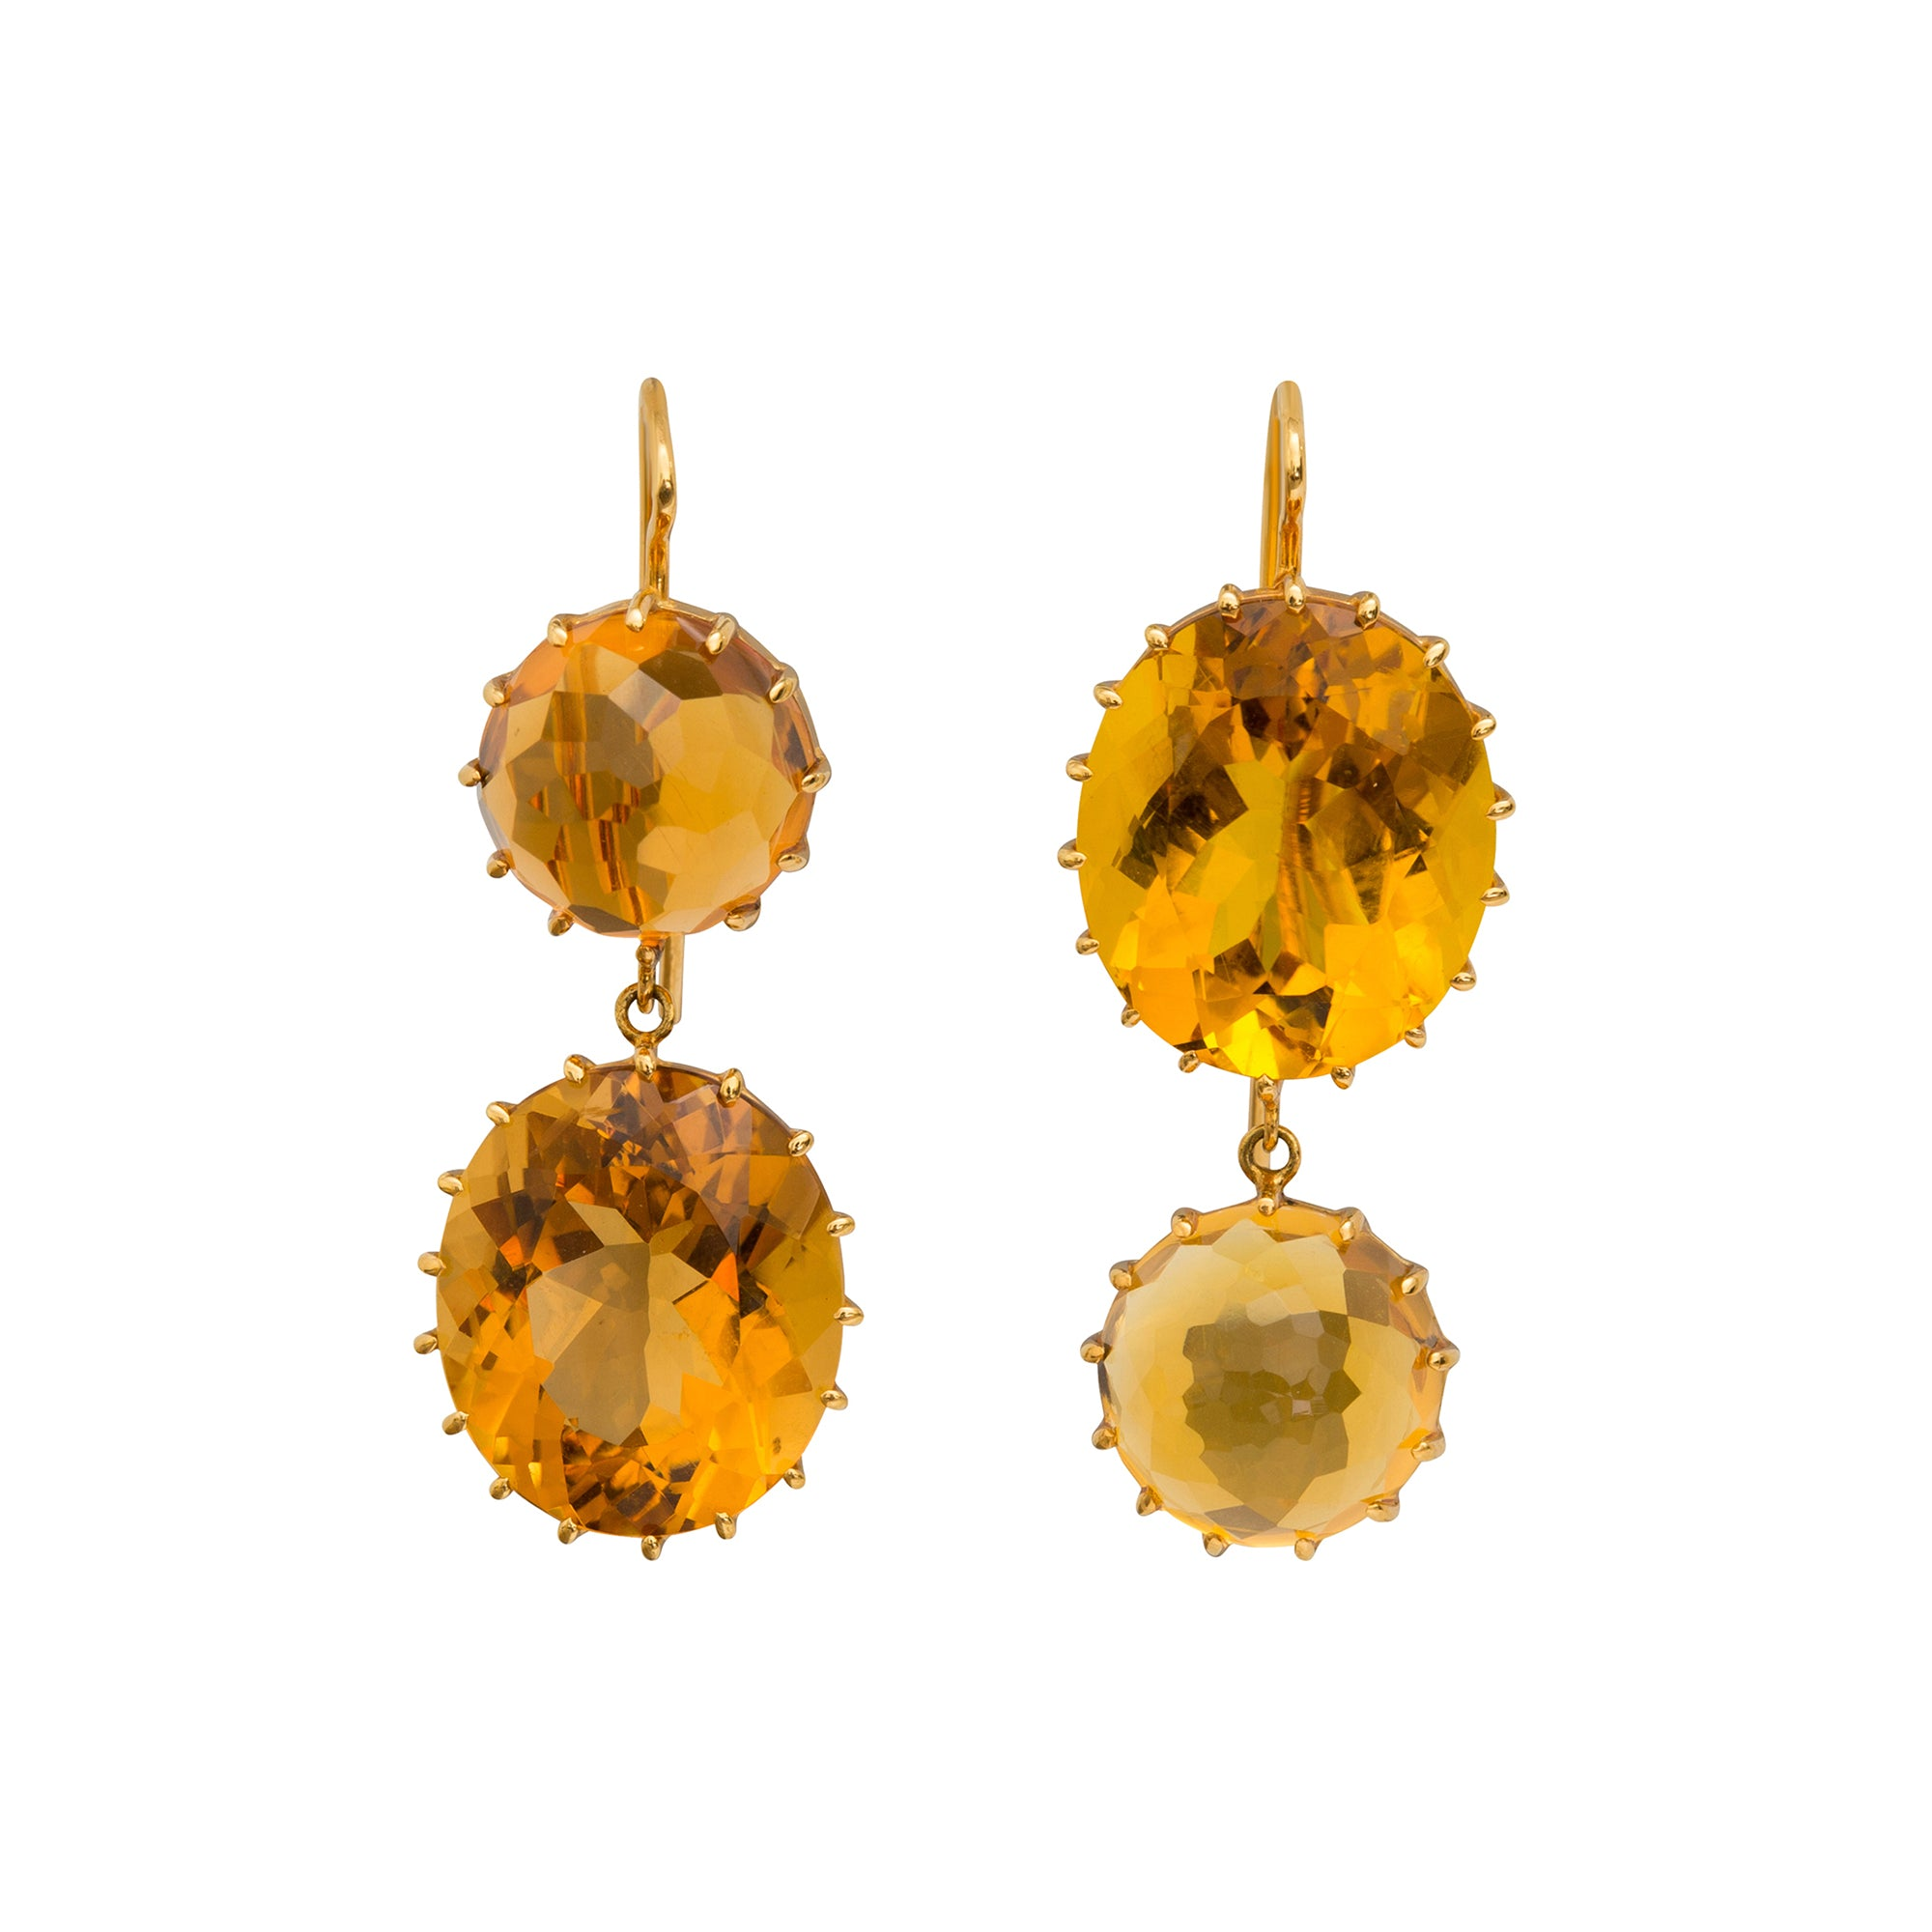 Antique Citrine Earrings by Renee Lewis for Broken English Jewelry